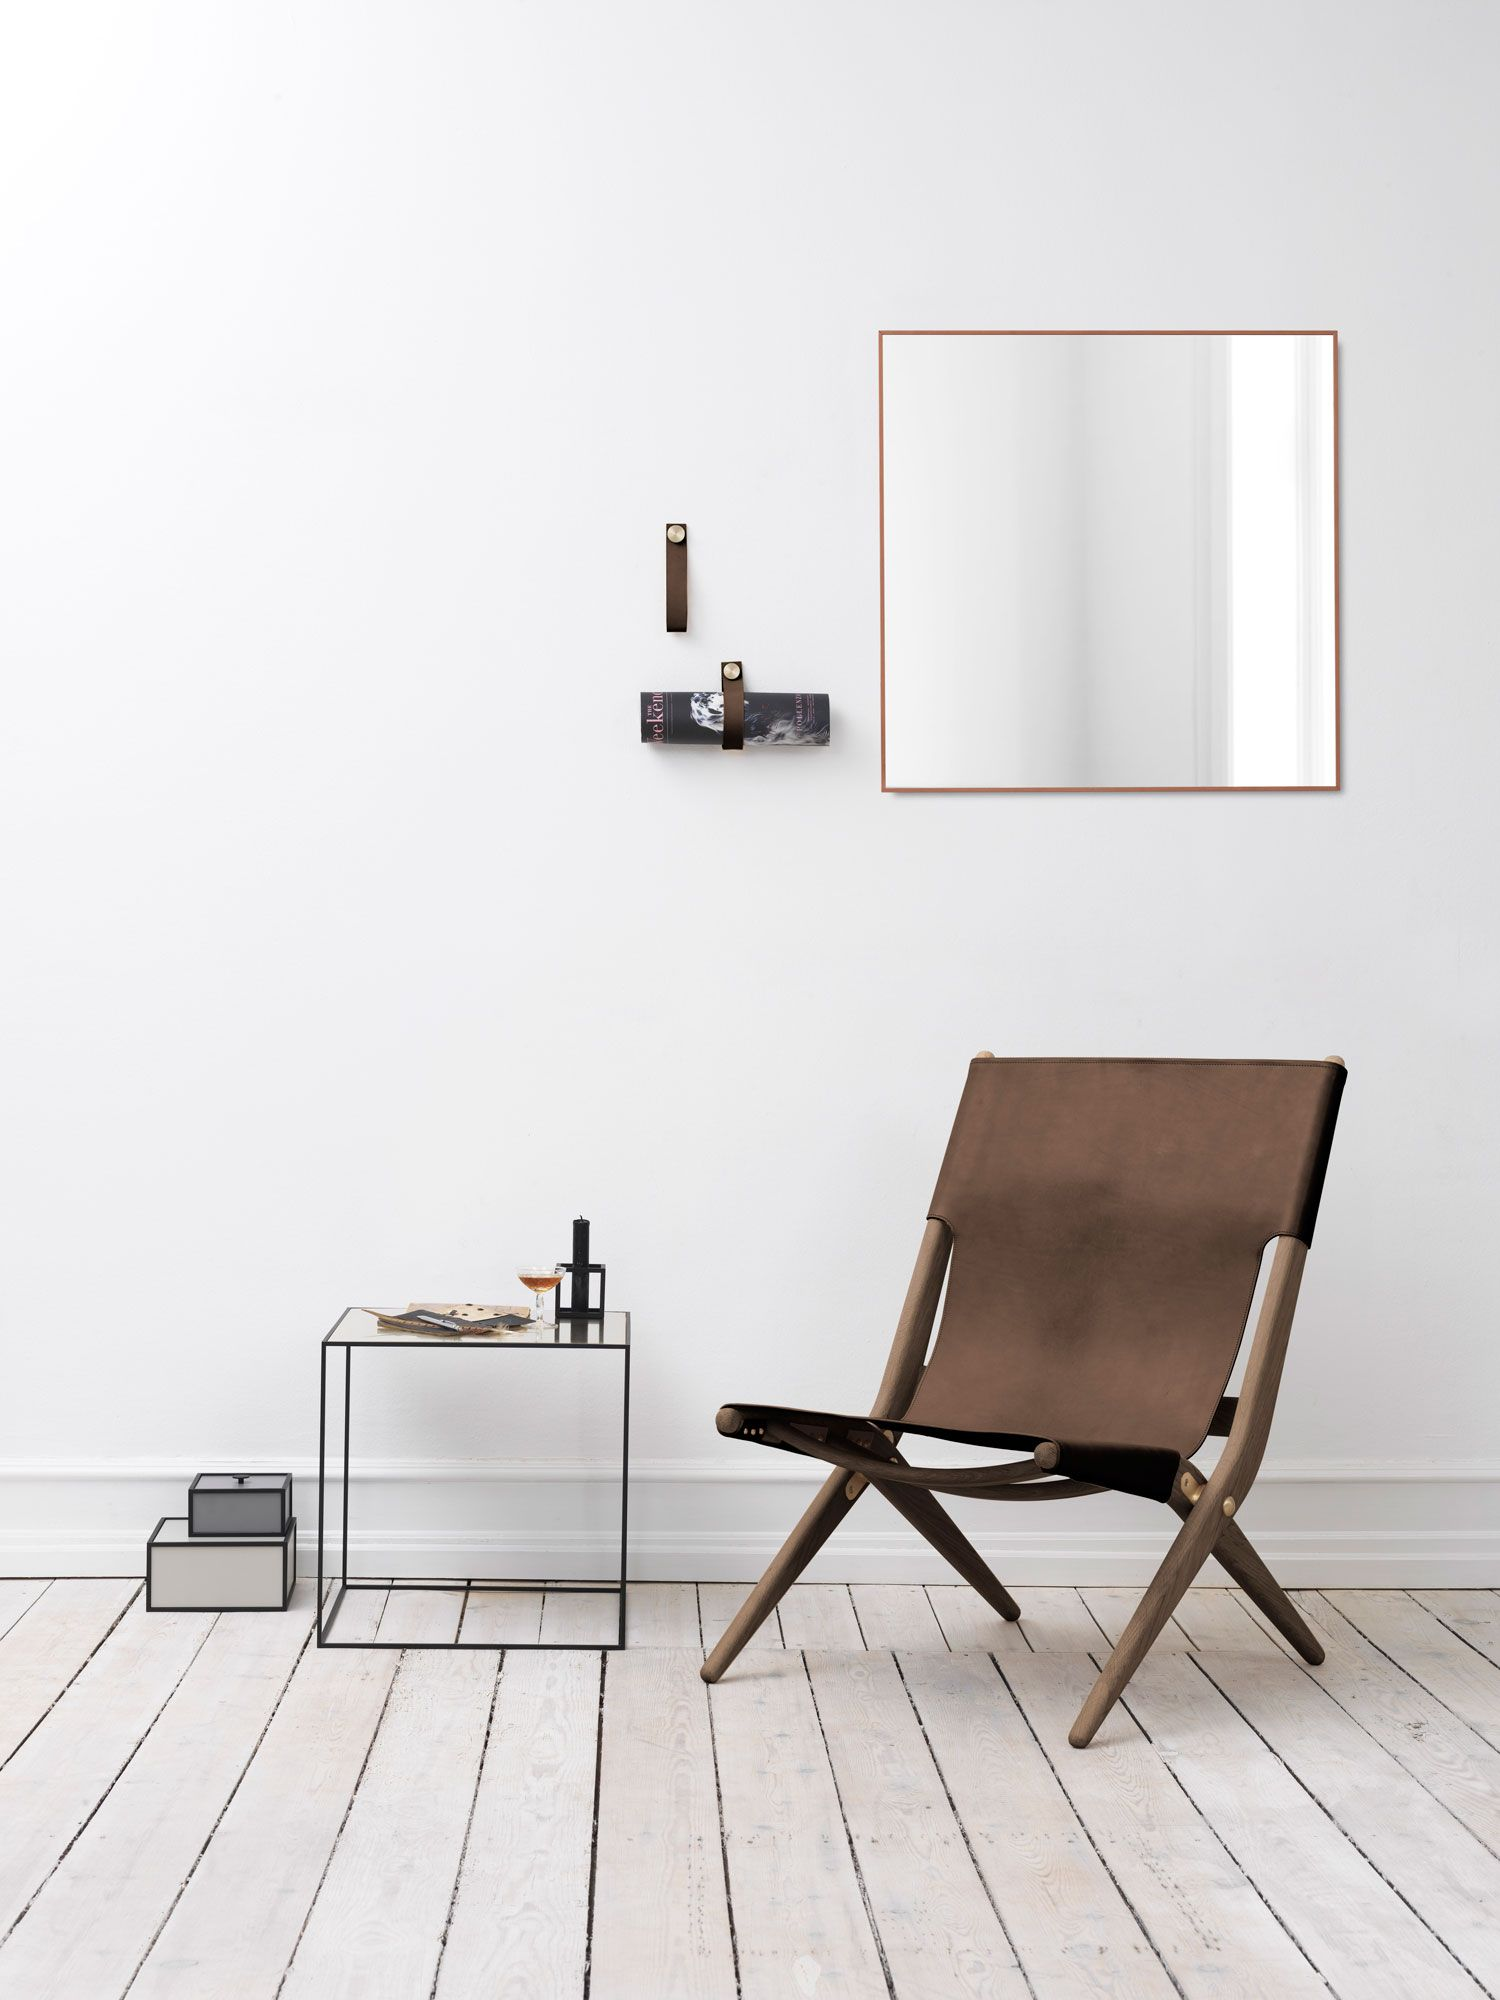 Saxe Chairlassen At Stockholm Design Week 2015  Httpwww Magnificent Chairs Design For Living Room Decorating Inspiration